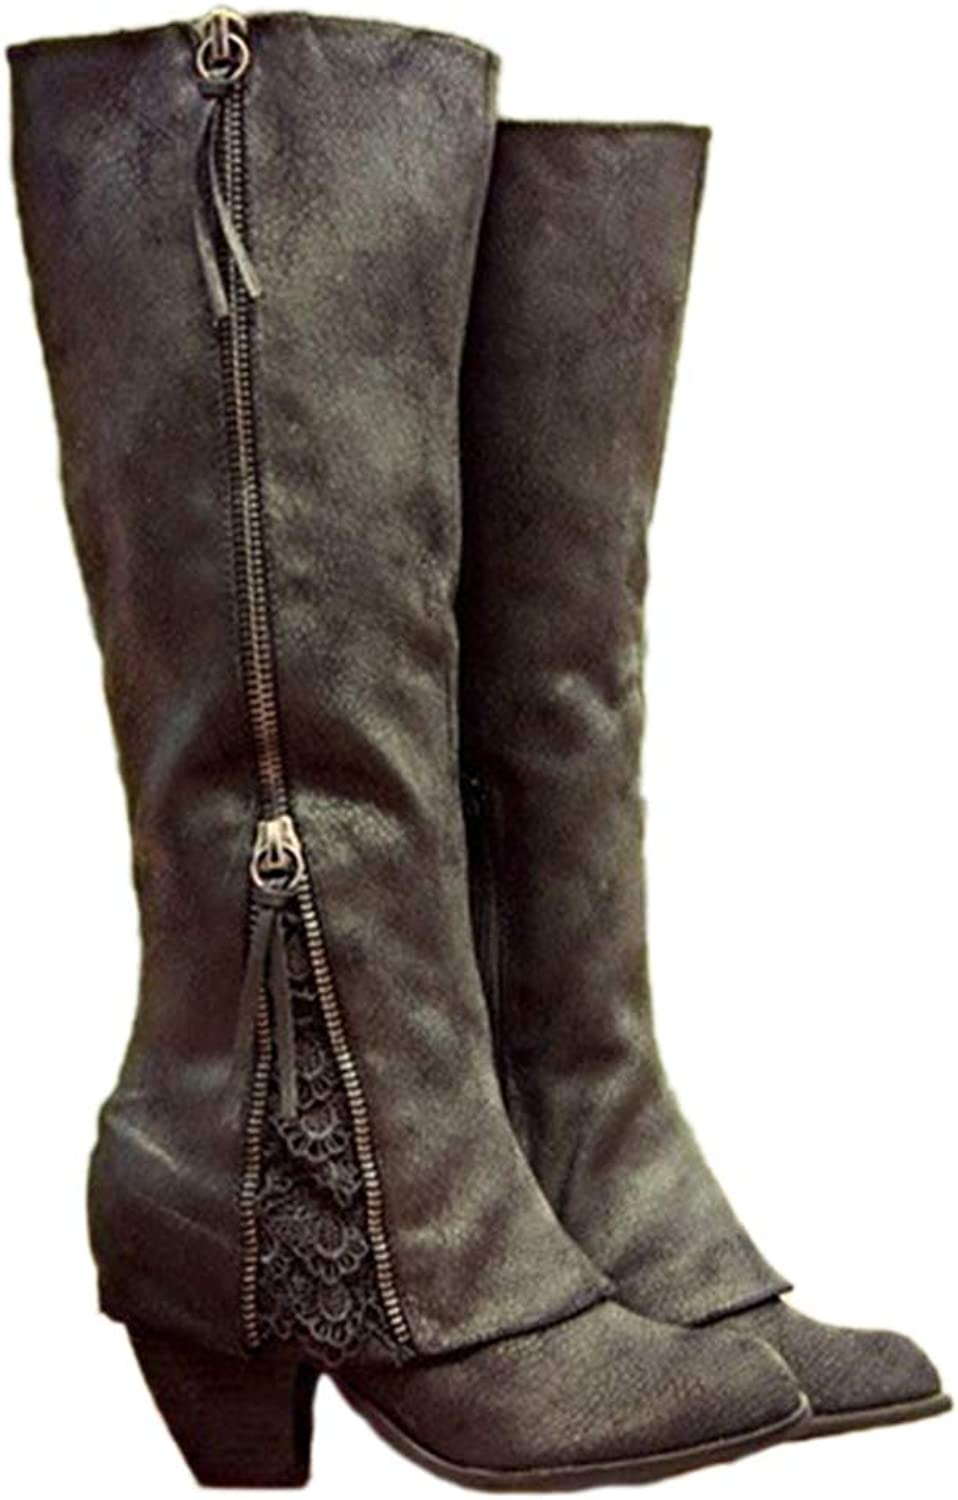 Winter Women Fashion Riding Boots Fold Over Design Near The Ankle with Lace Detailing at Edge Plus Size Boots